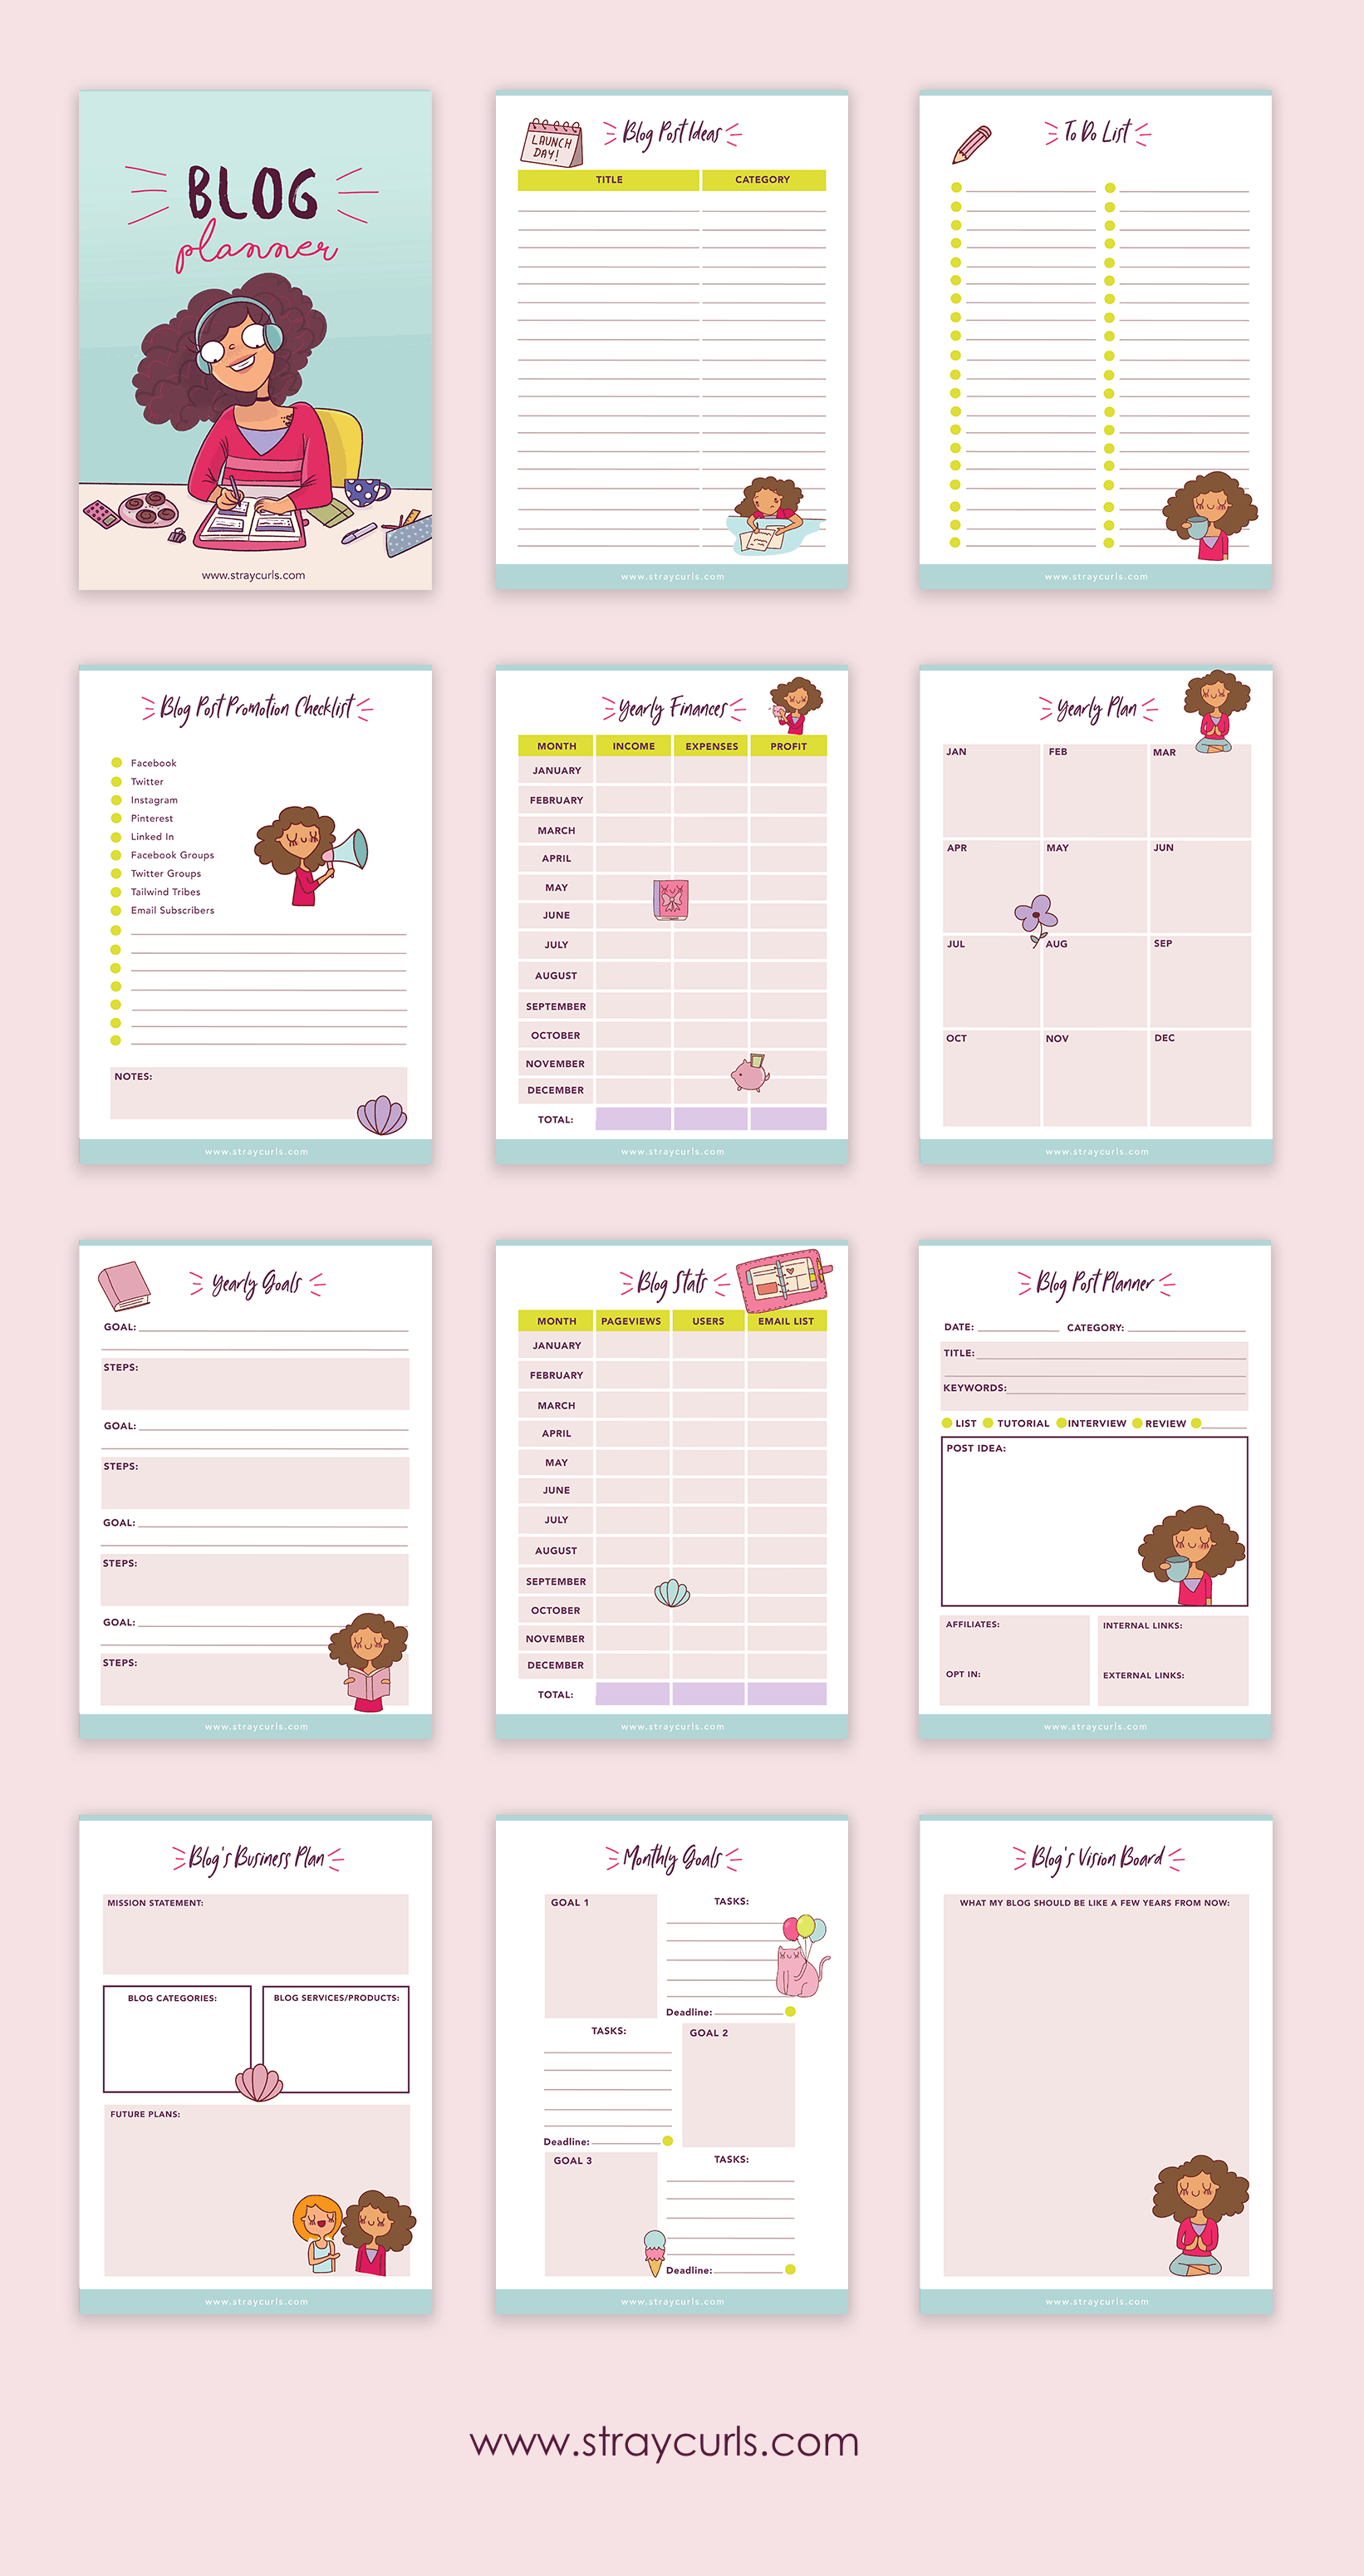 This cute printable blog planner contains 12 pages that you can download for free.